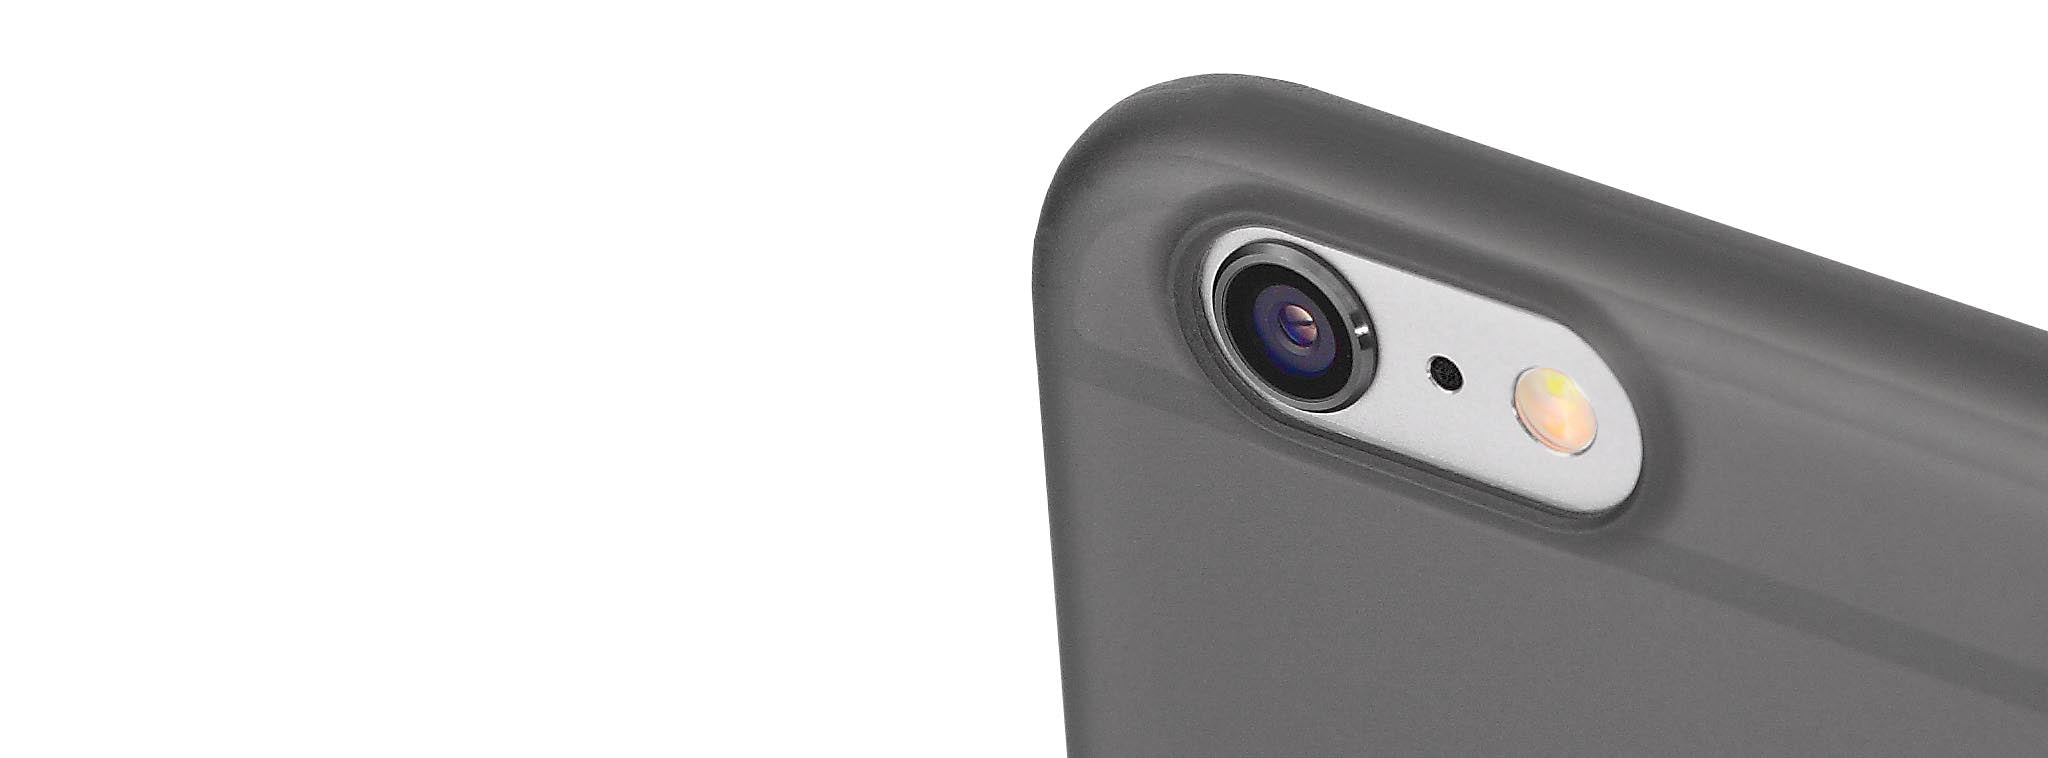 Veil XT | Ultra thin iPhone 6 case | Camera hole